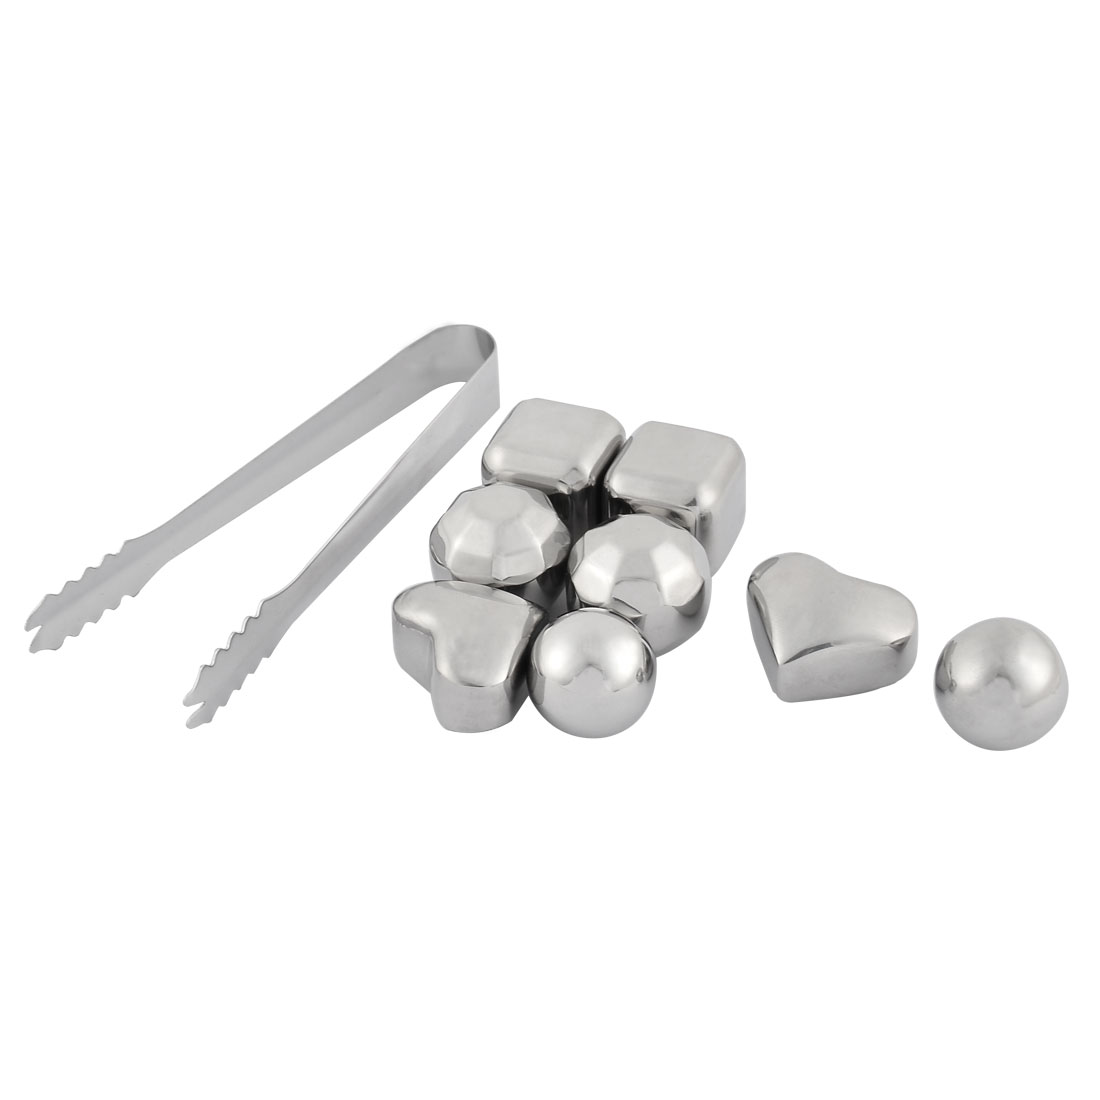 Home Stainless Steel Soda Juice Cold Compress Whiskey Ice Cube Silver Tone 9 in 1